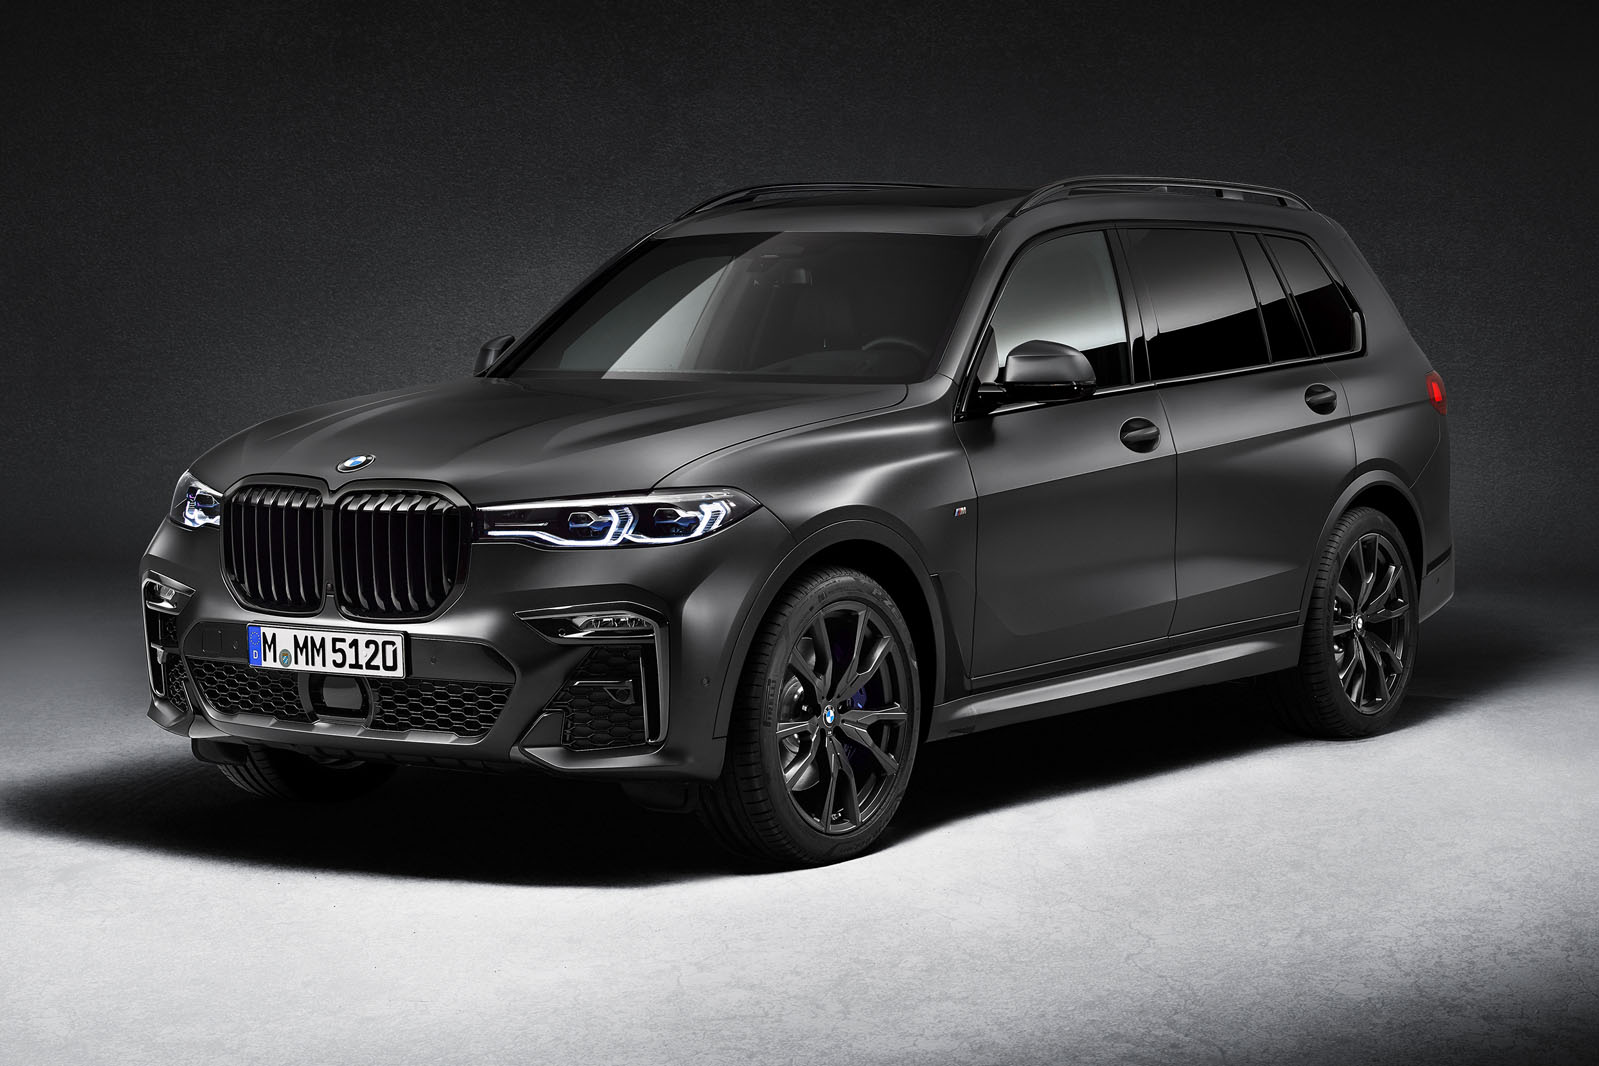 New Bmw X7 Dark Shadow Edition Is Ultra Exclusive Special Autocar